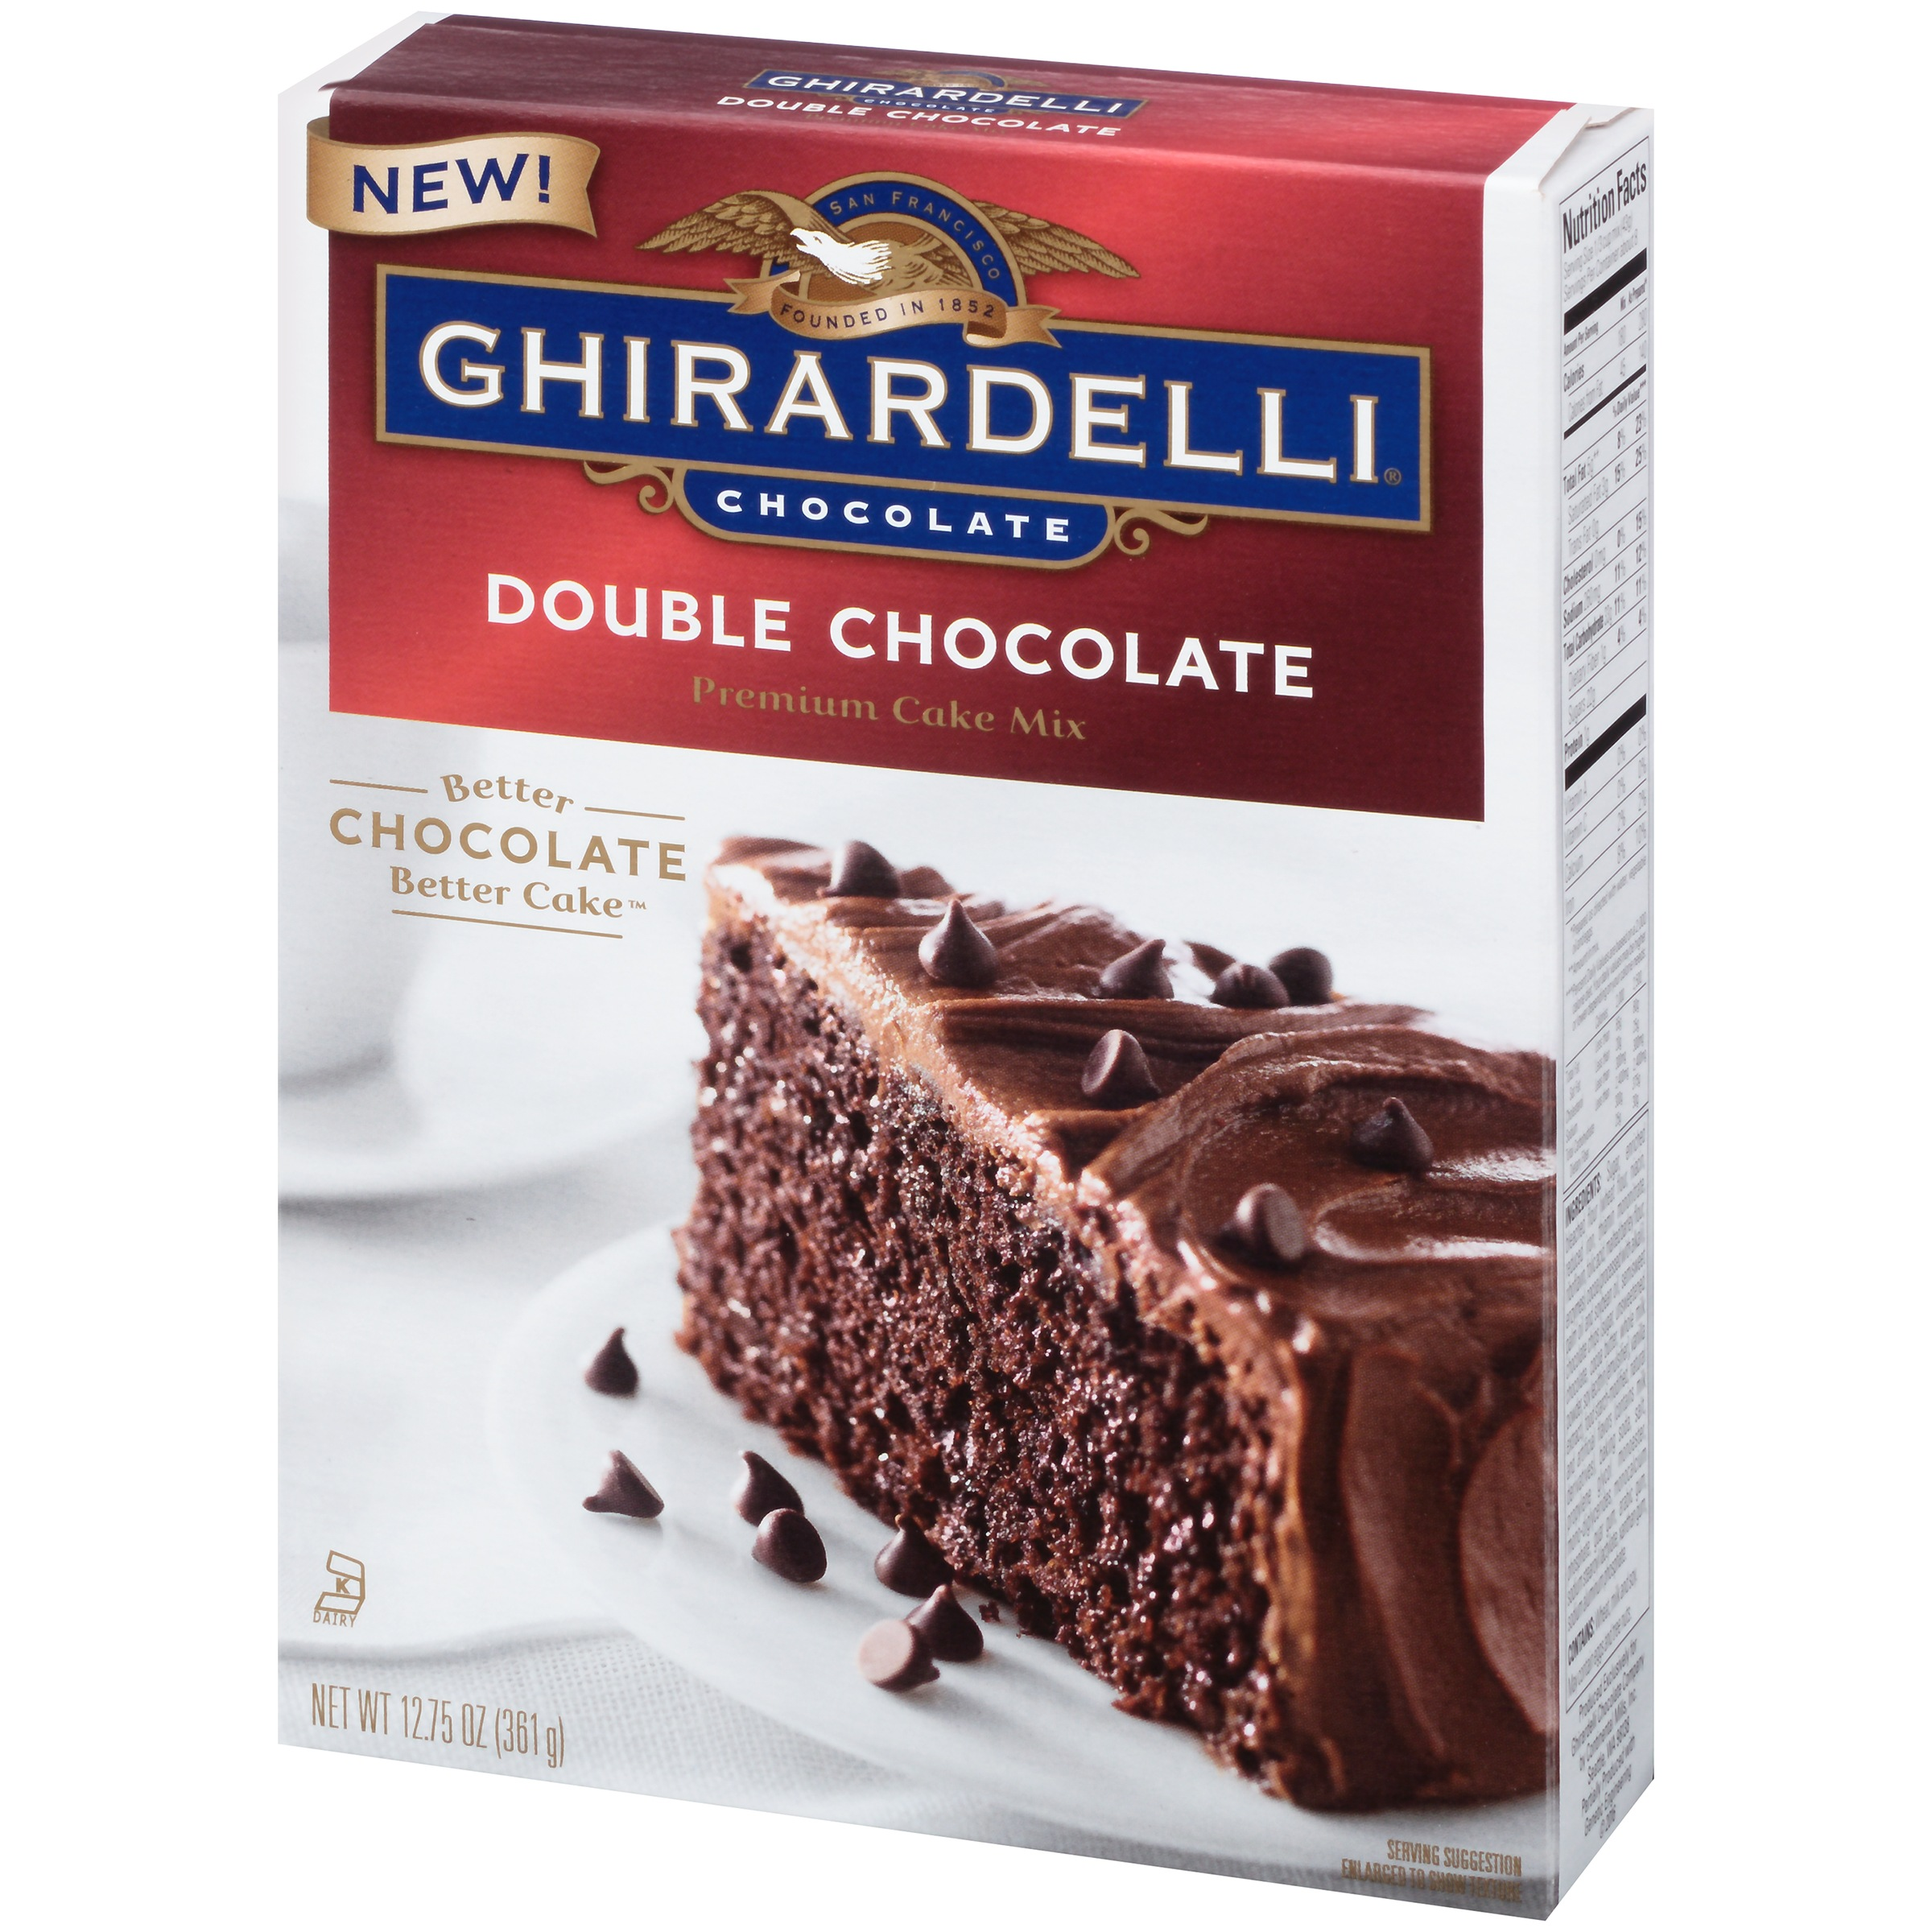 Ghirardelli Dark Chocolate Premium Cake Mix